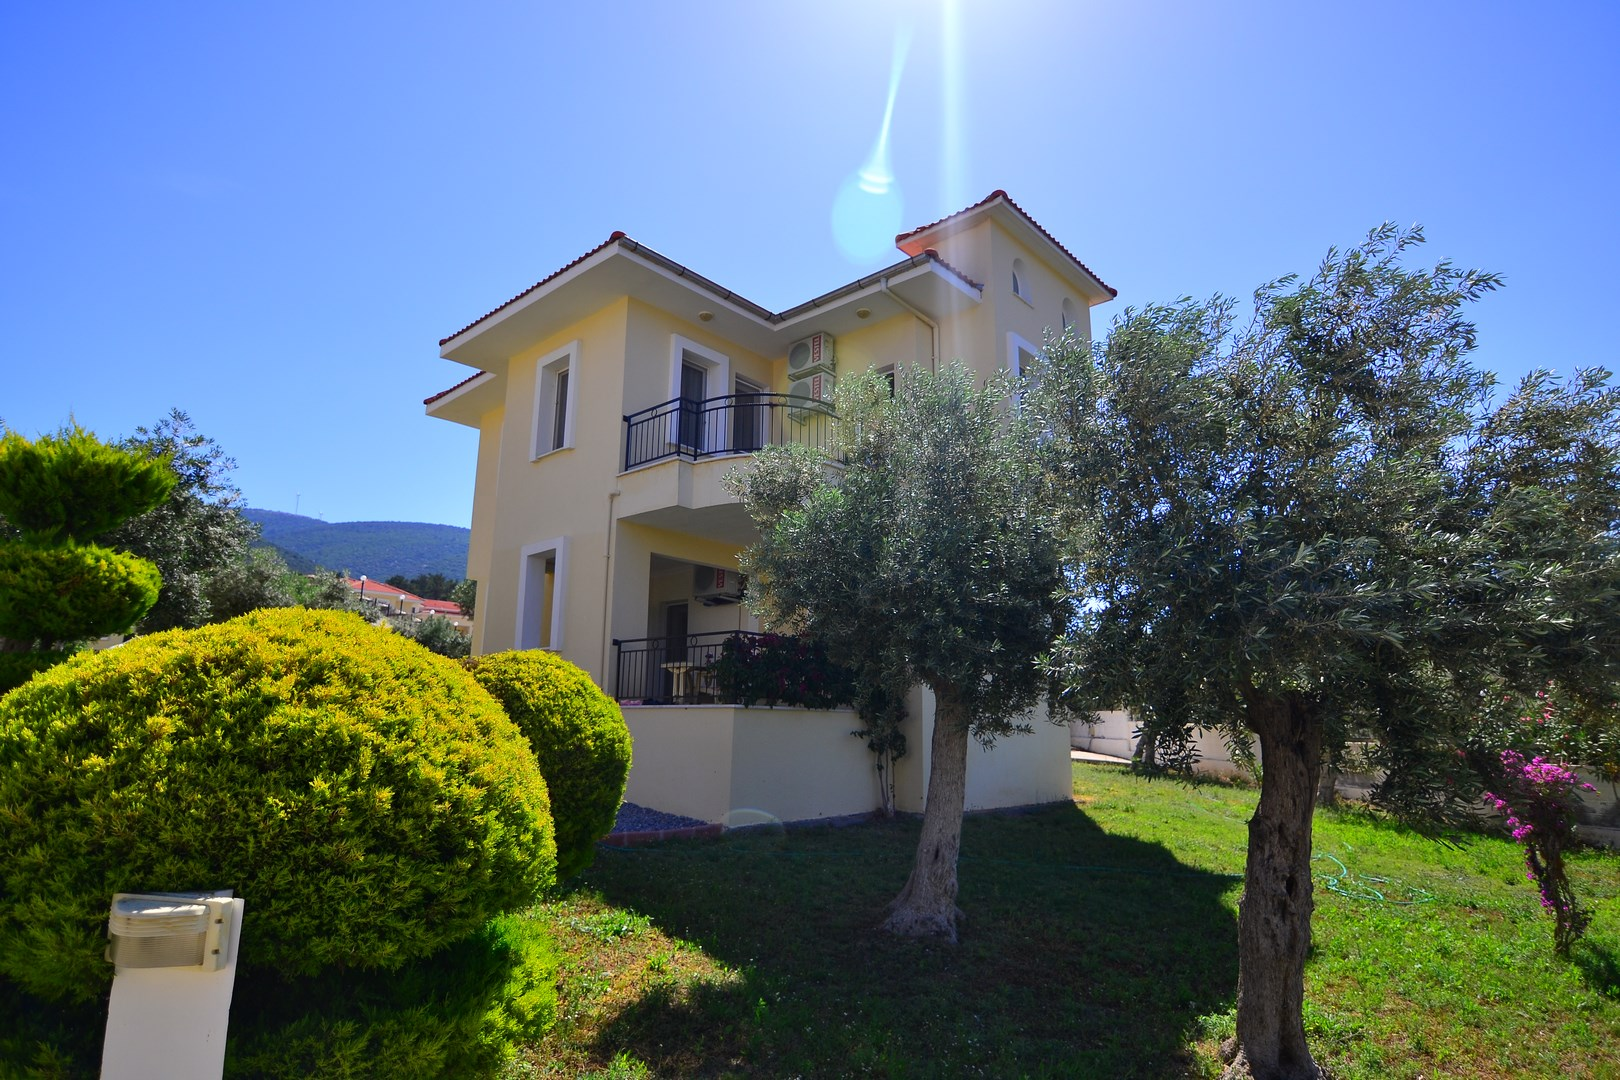 Detached Villa For Sale in complex Akbuk (Now Sold)